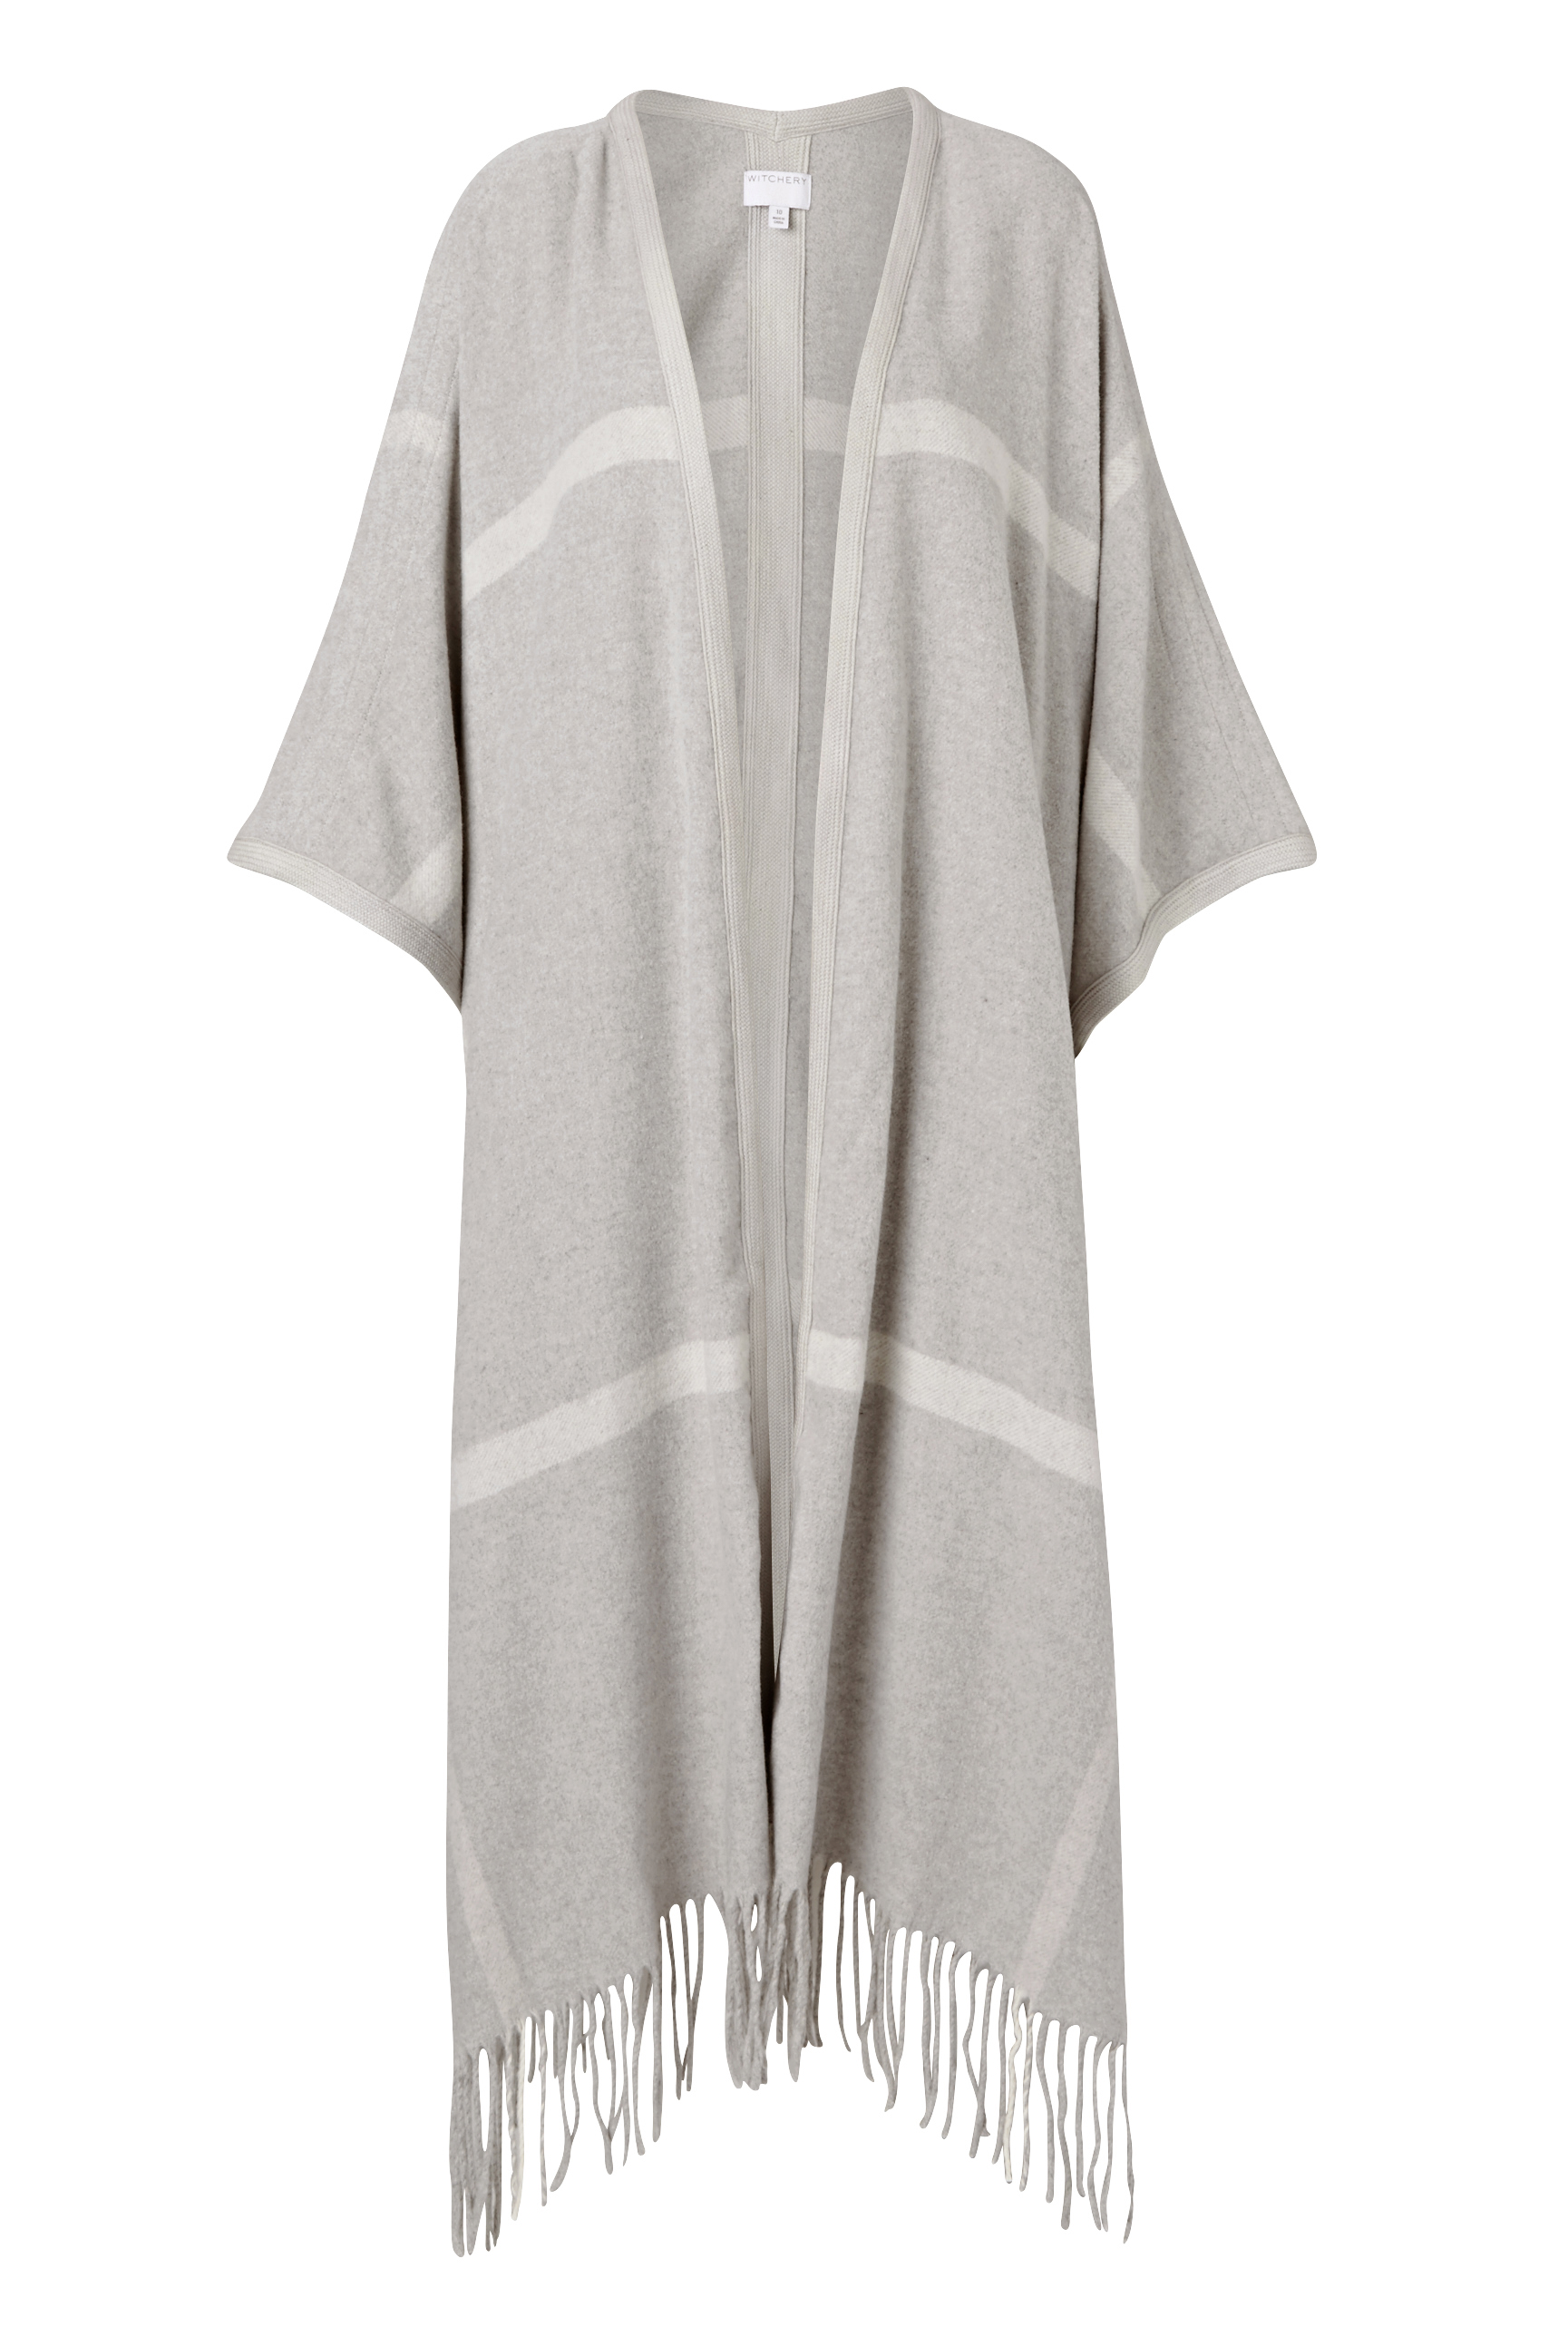 60190066_Witchery First Edition Omaka Cape, RRP$279.90